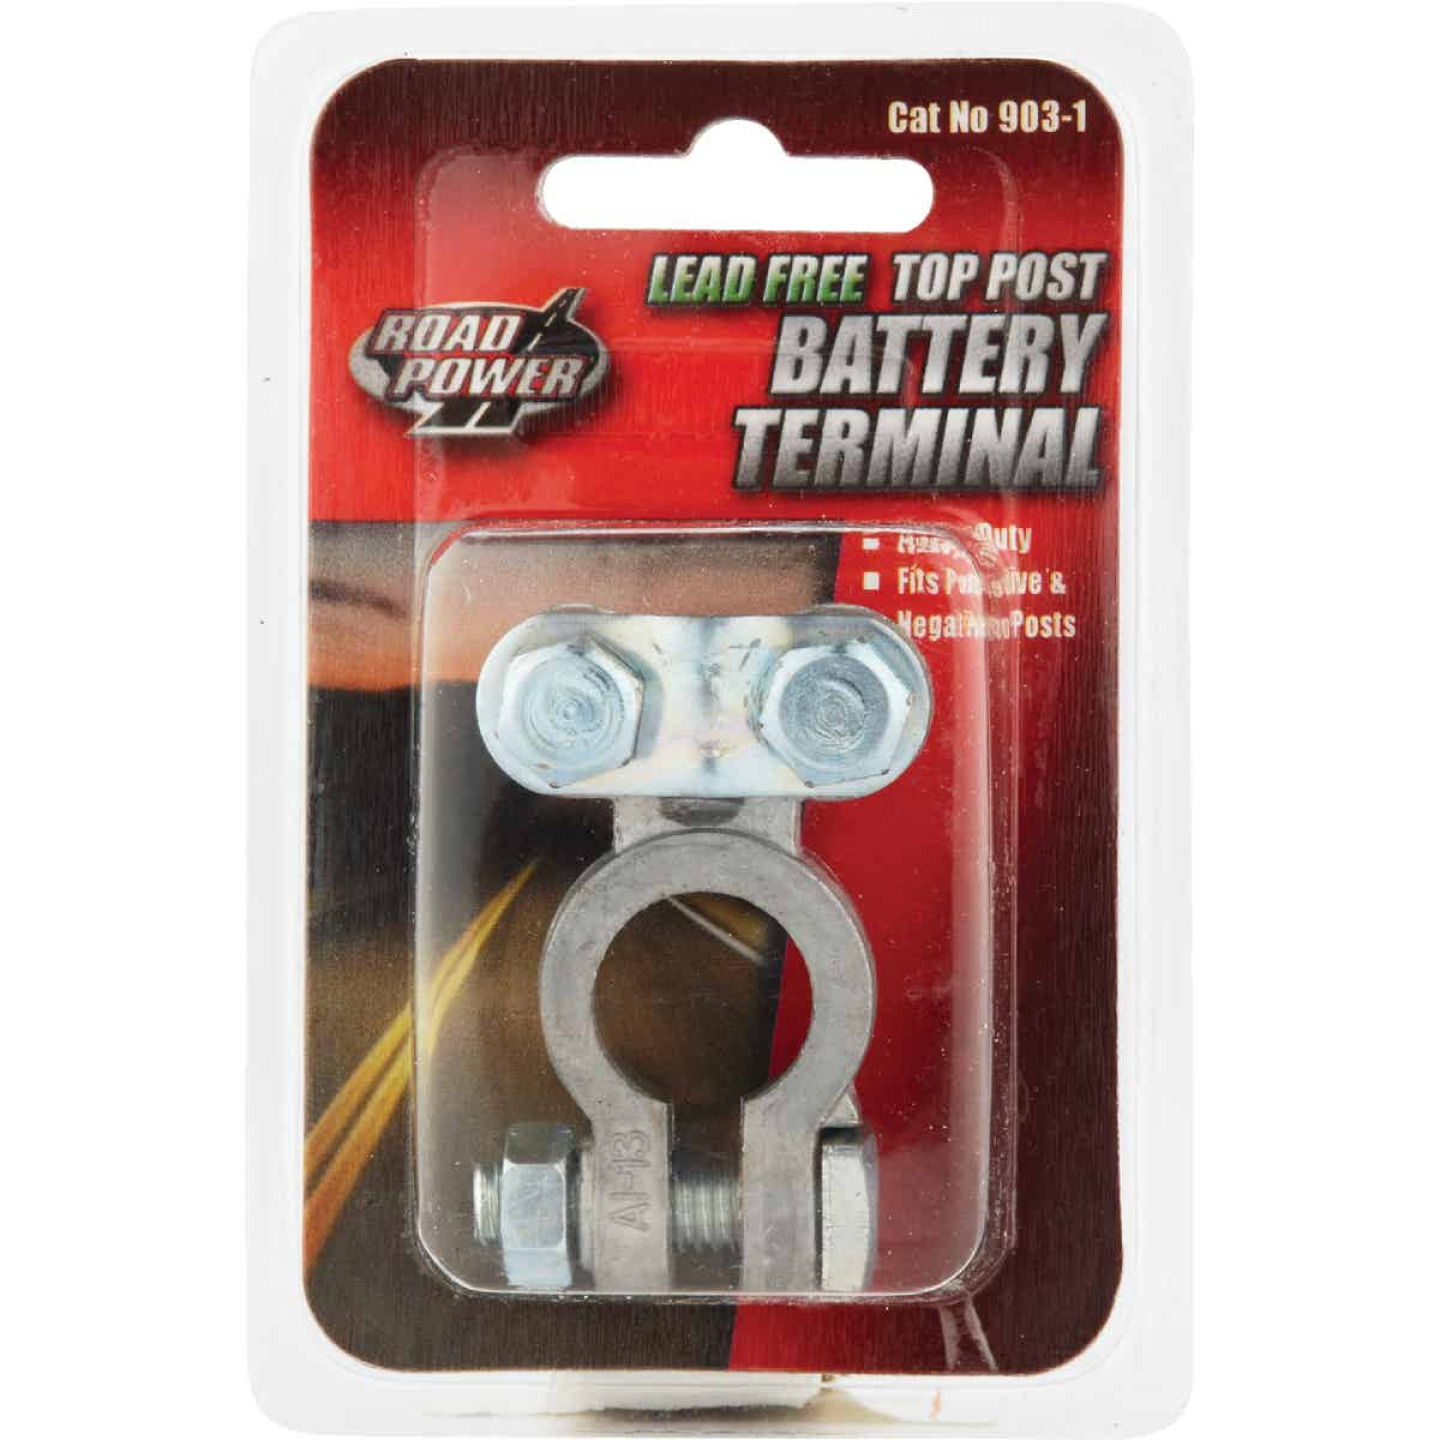 Road Power Lead-Free Top Post Battery Terminal Image 2